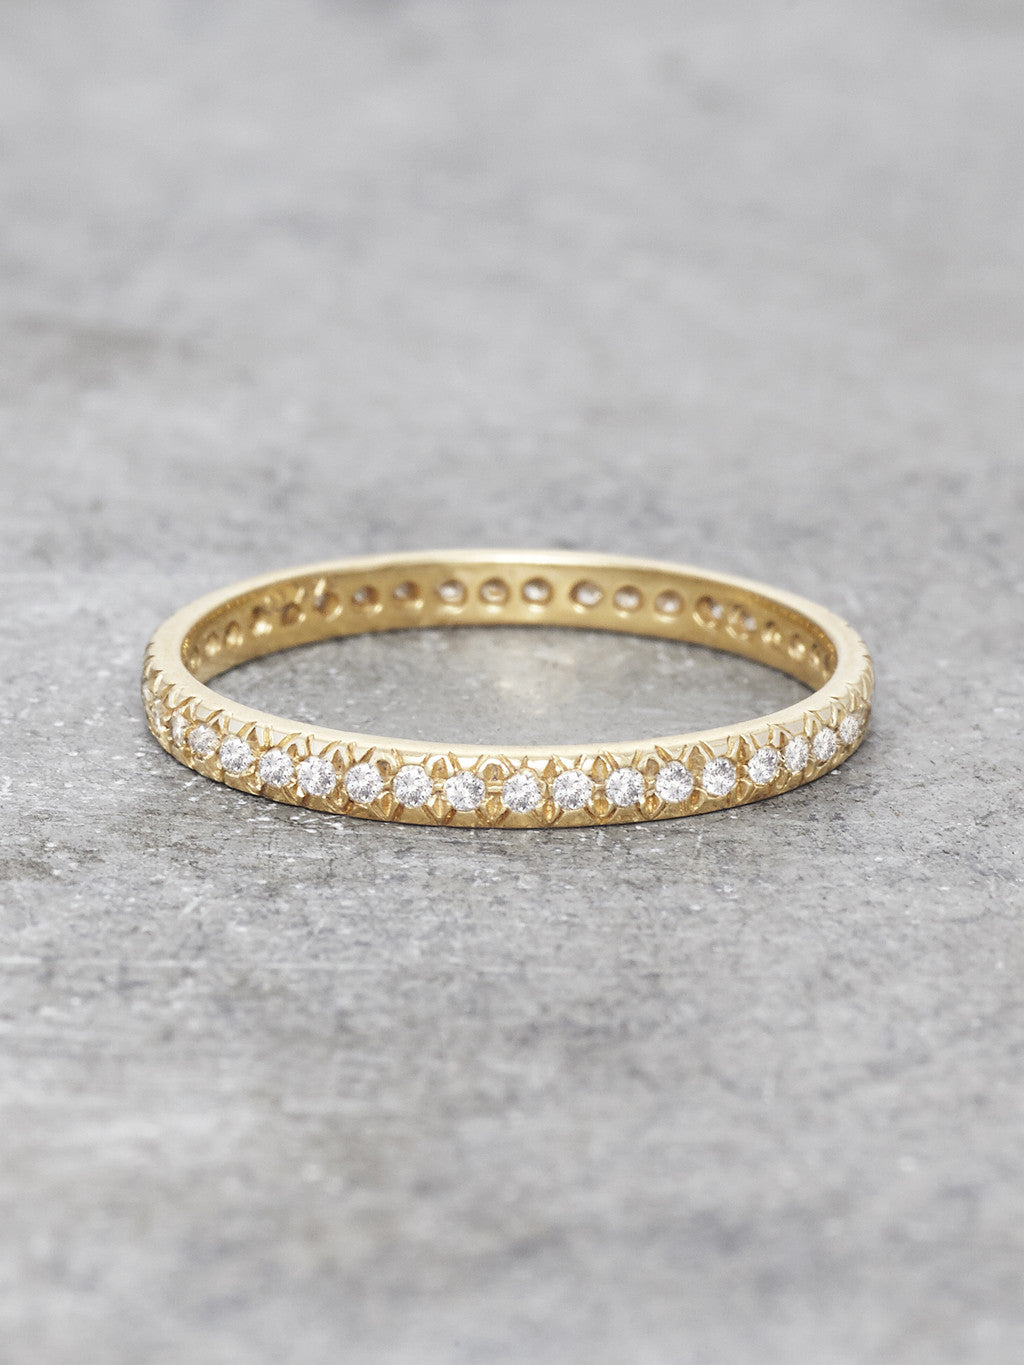 Antique Pave Diamond Fishtail Ring